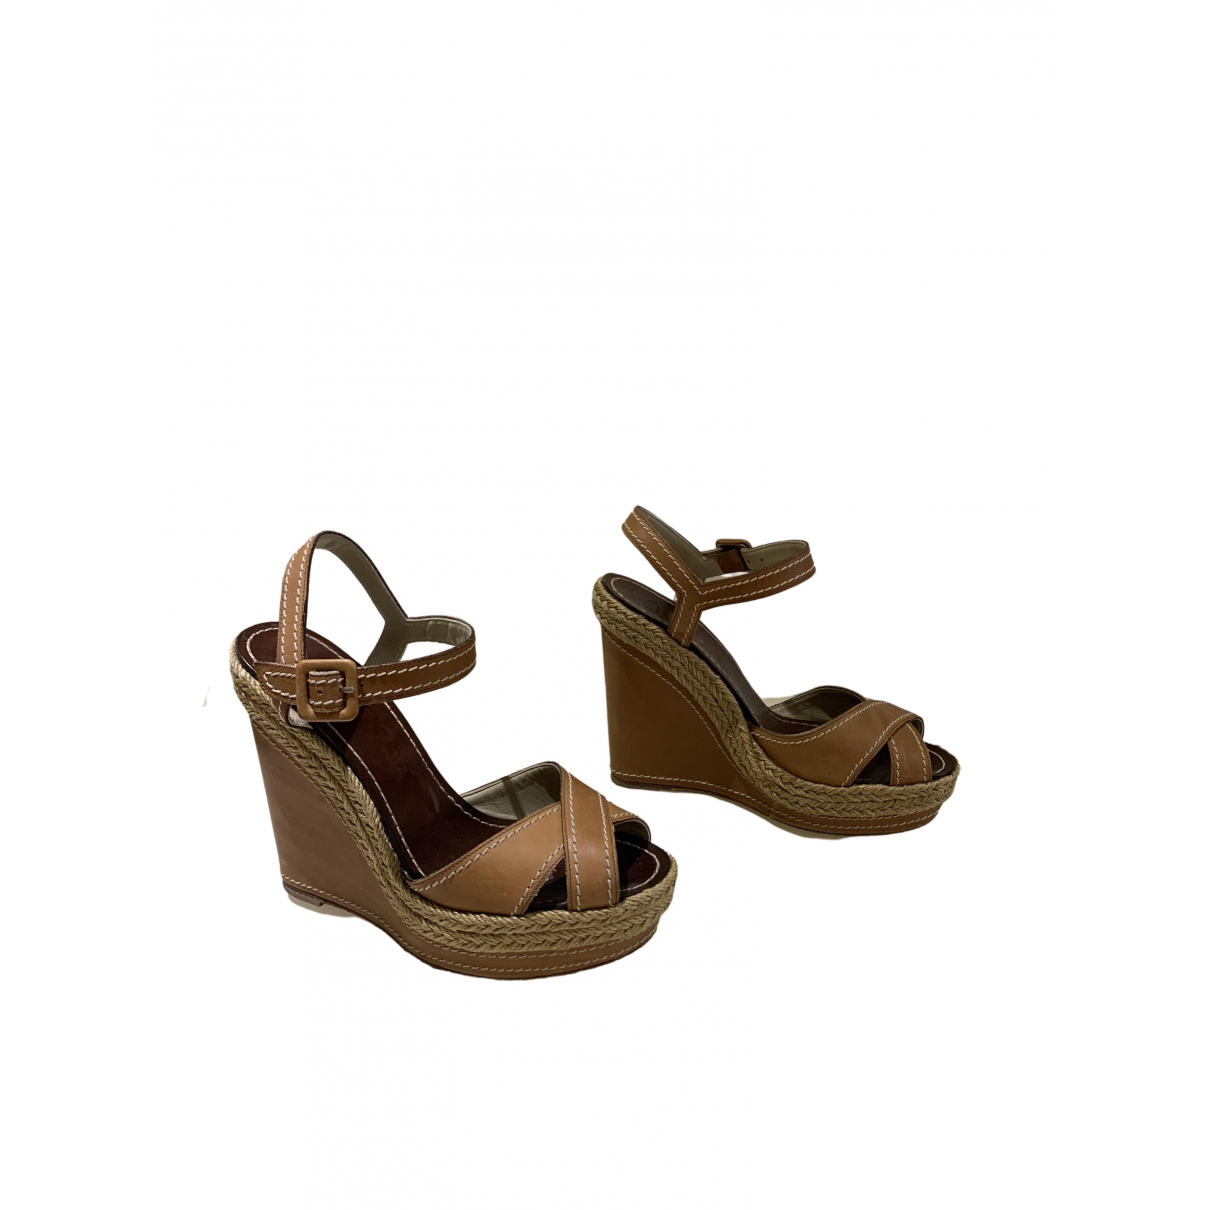 Christian Louboutin \N Beige Leather Sandals for Women 37 EU